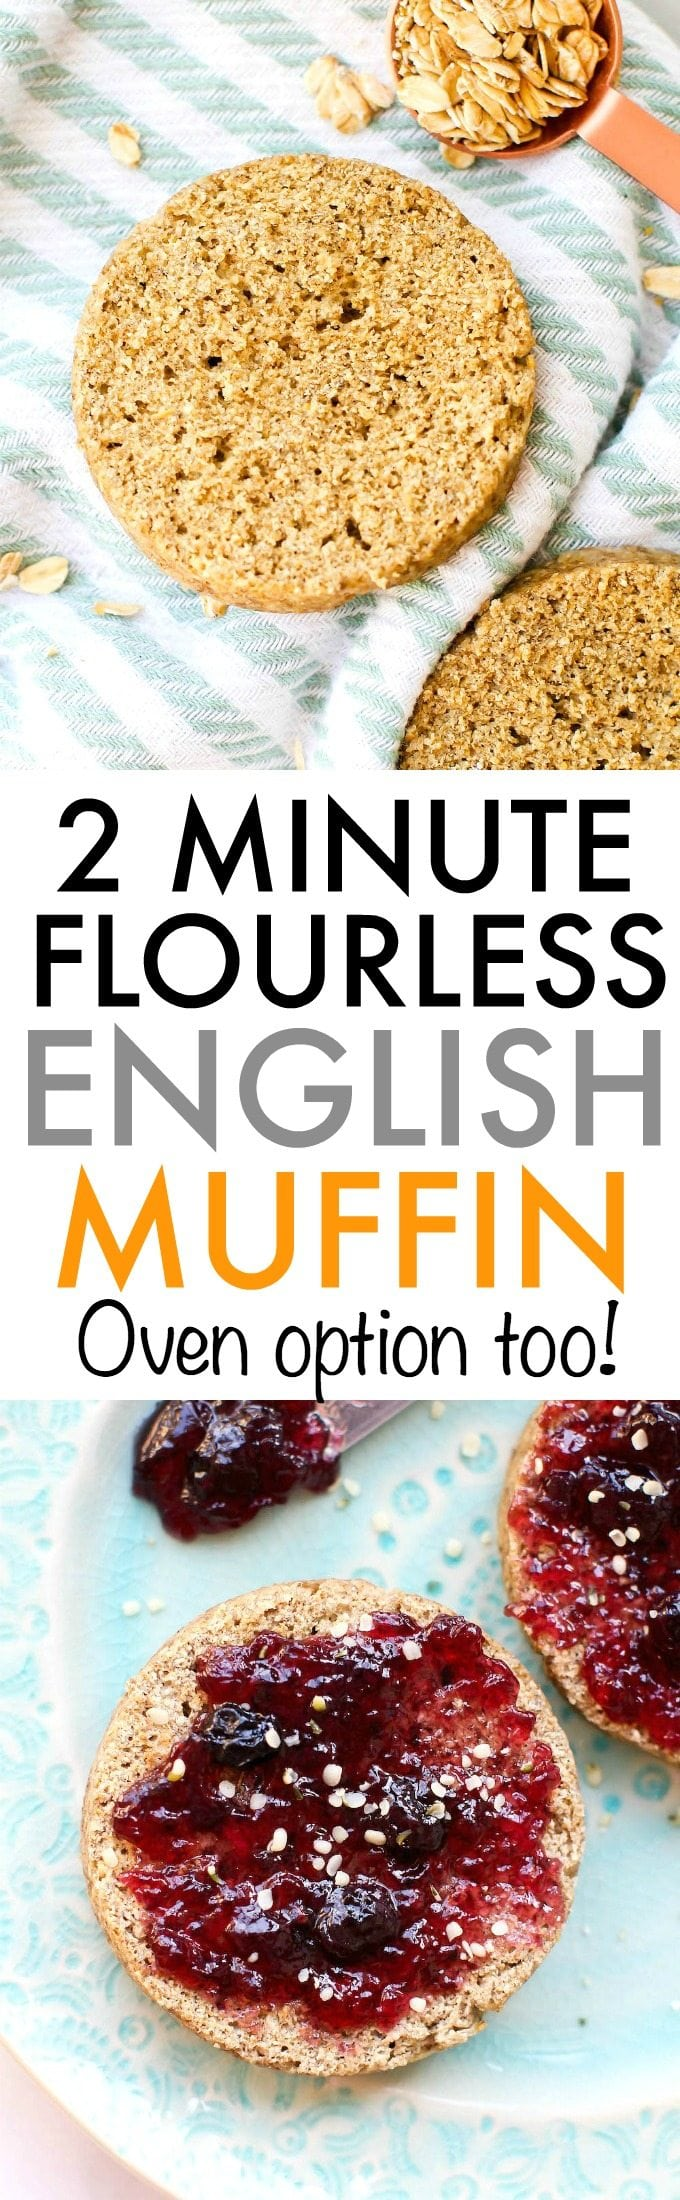 2 minute flourless english muffin forumfinder Image collections